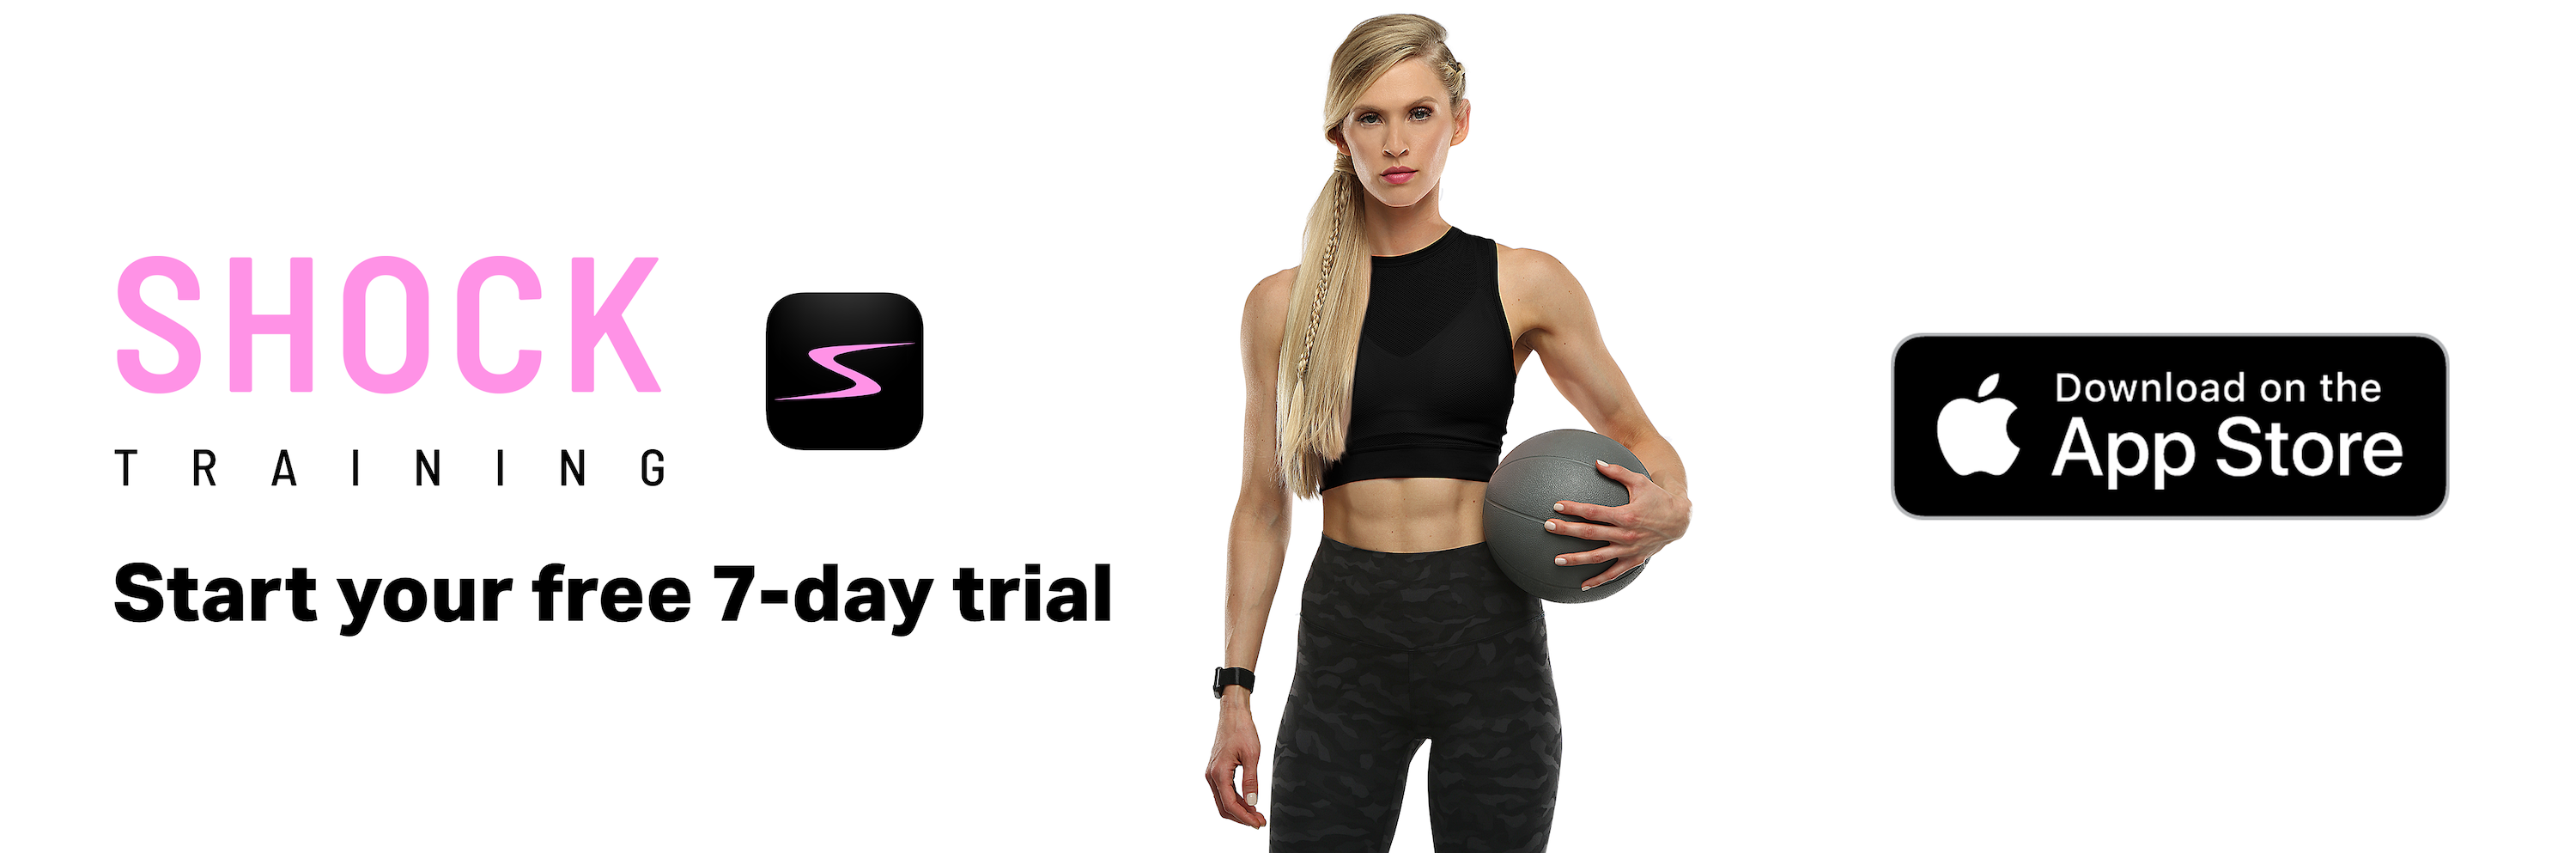 The SHOCK Women's Fitness App gives women a new way to get fit, tone up, and build muscle.